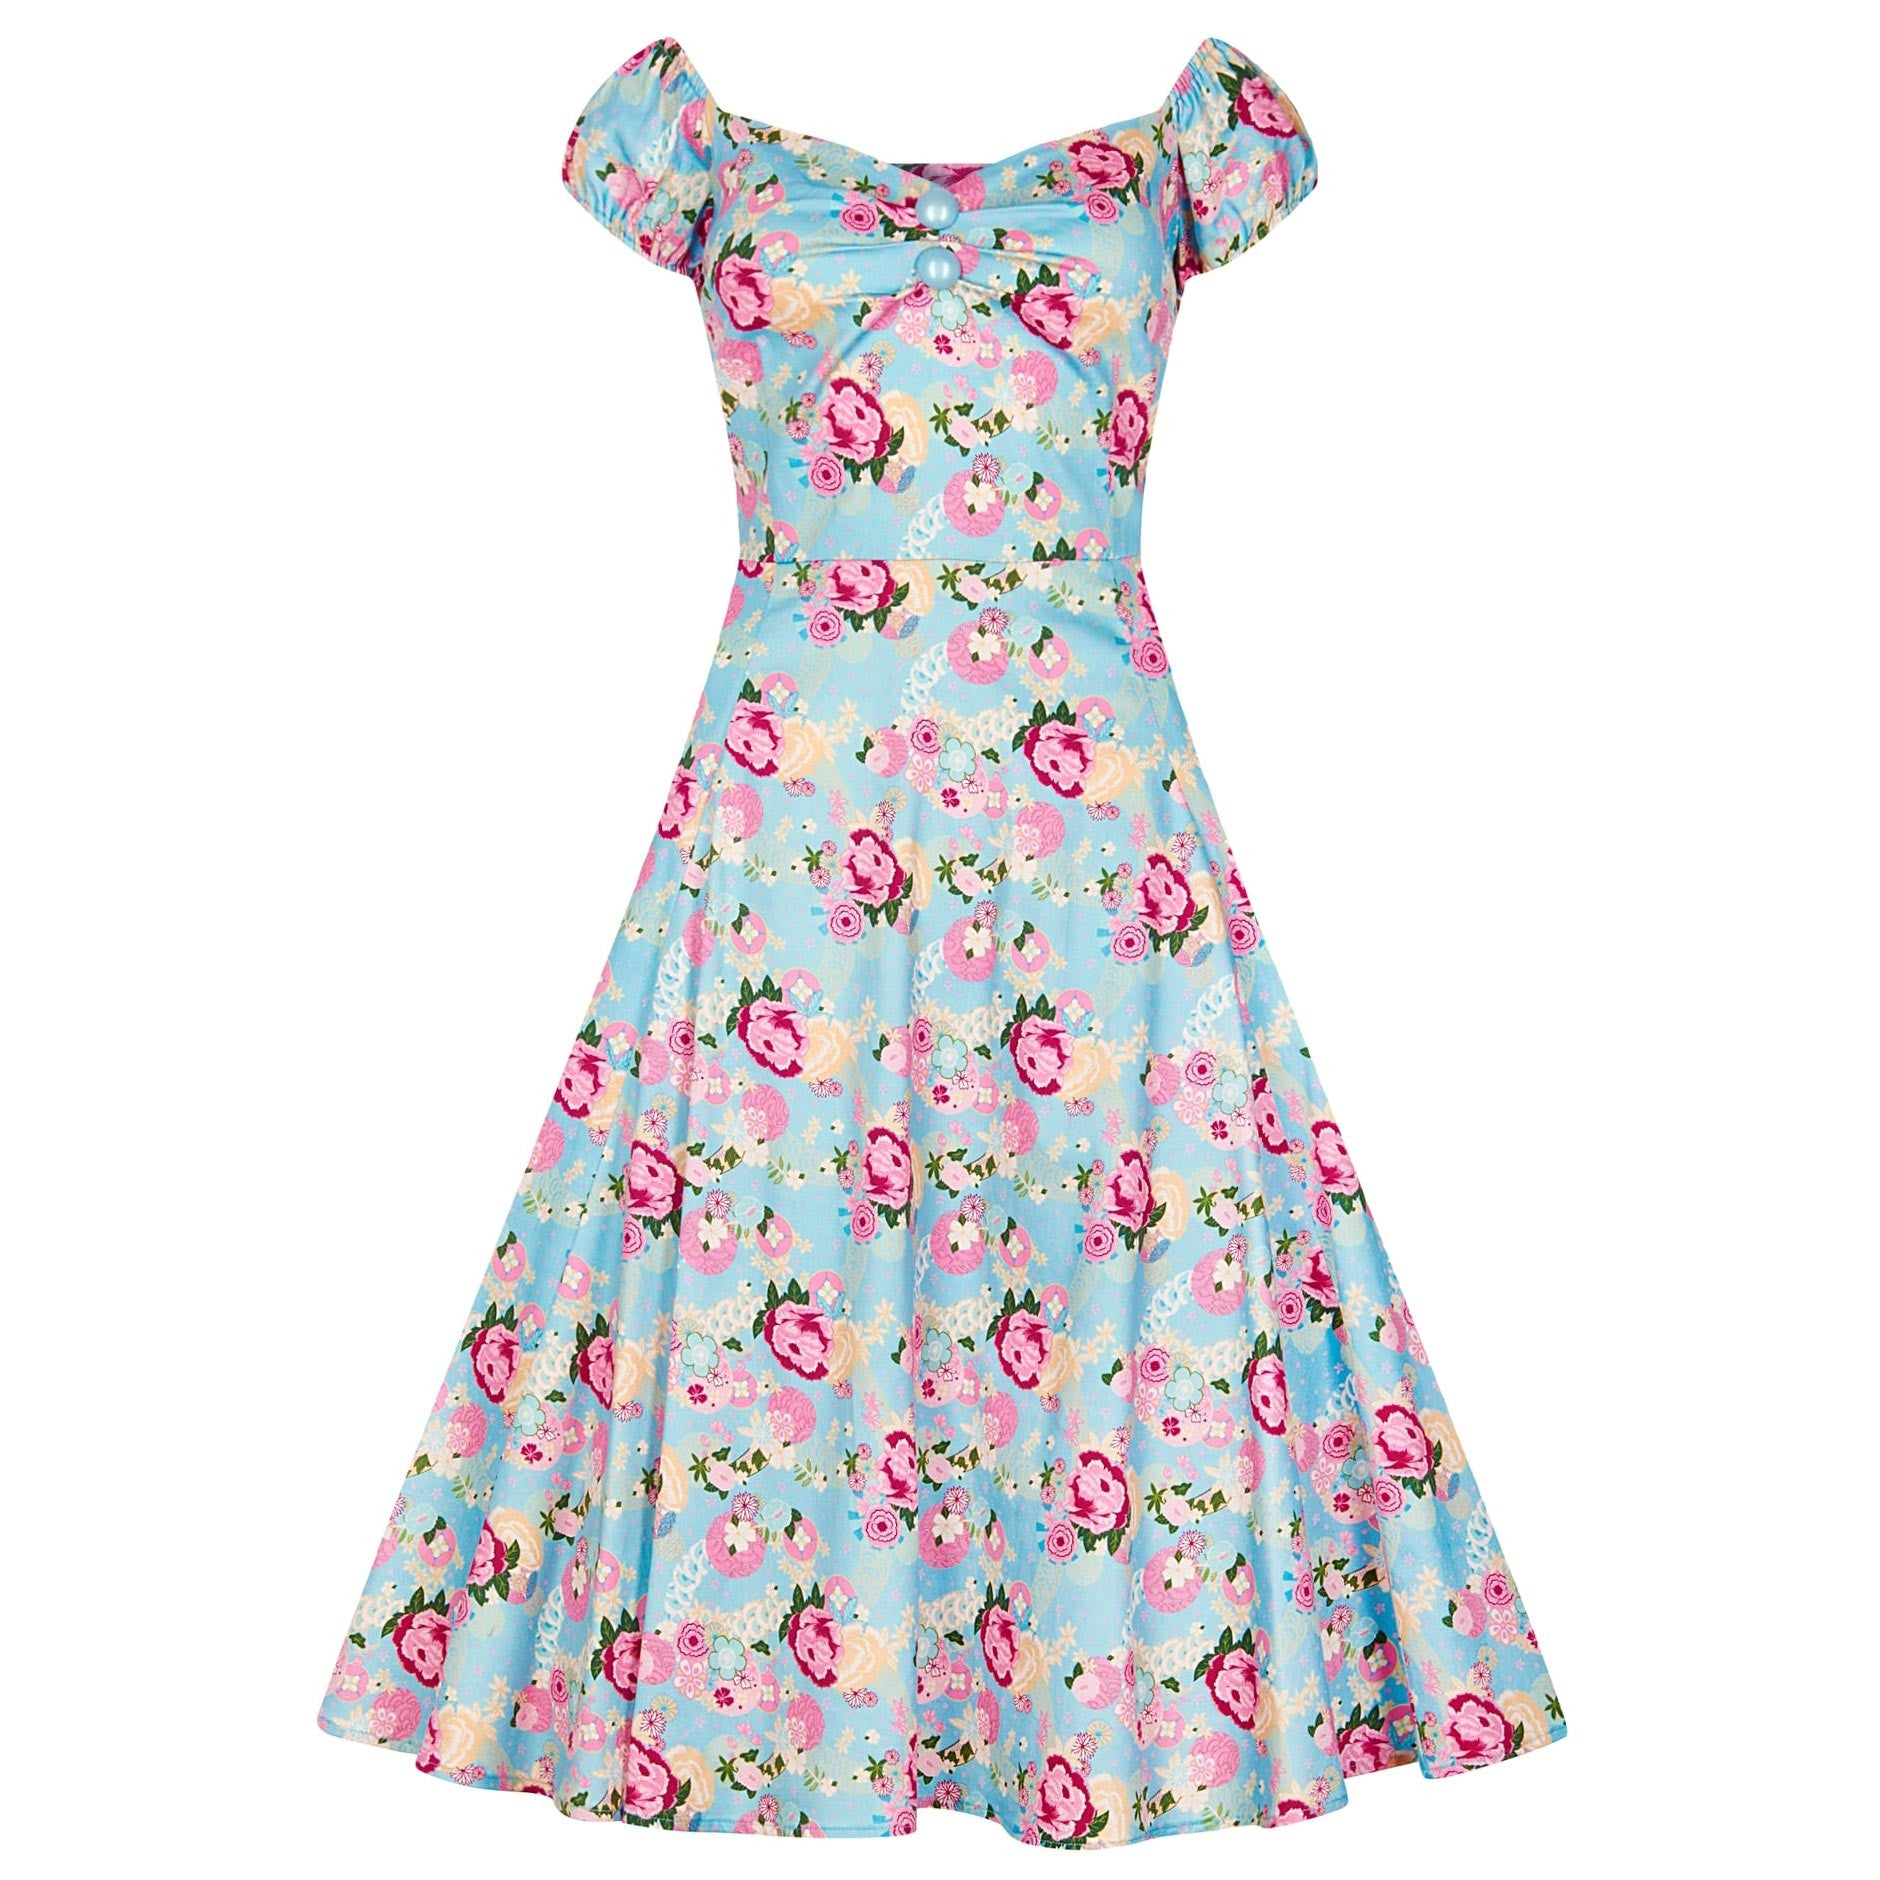 4dd345cee8bf Collectif Vintage Blue and Pink Floral Doll 50s Swing Dress - Pretty Kitty  Fashion